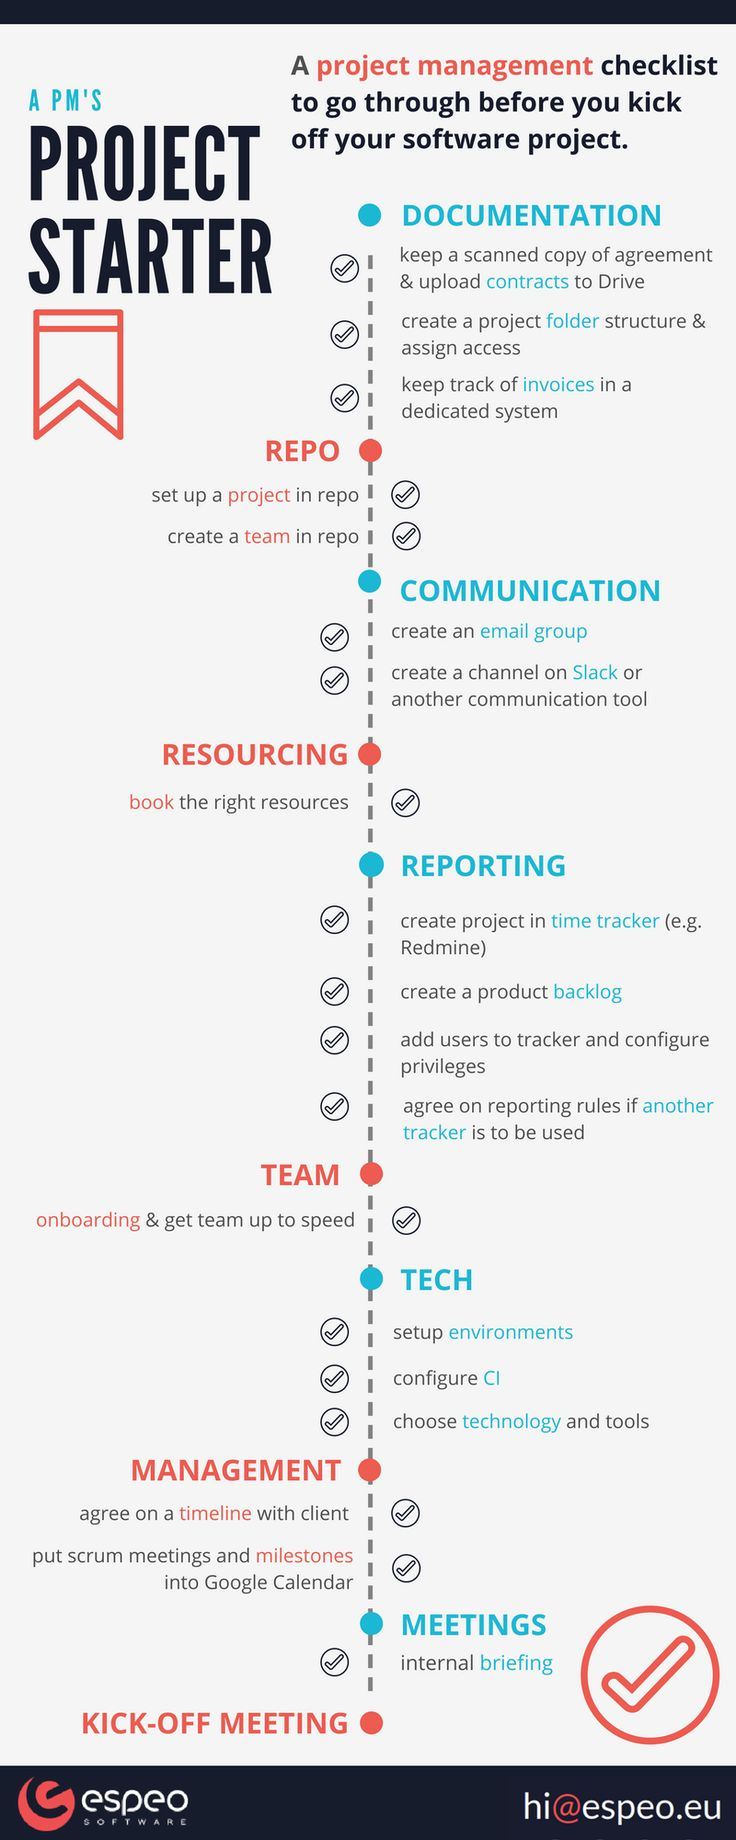 How to start off a #software project - our #business and #tech #checklist!